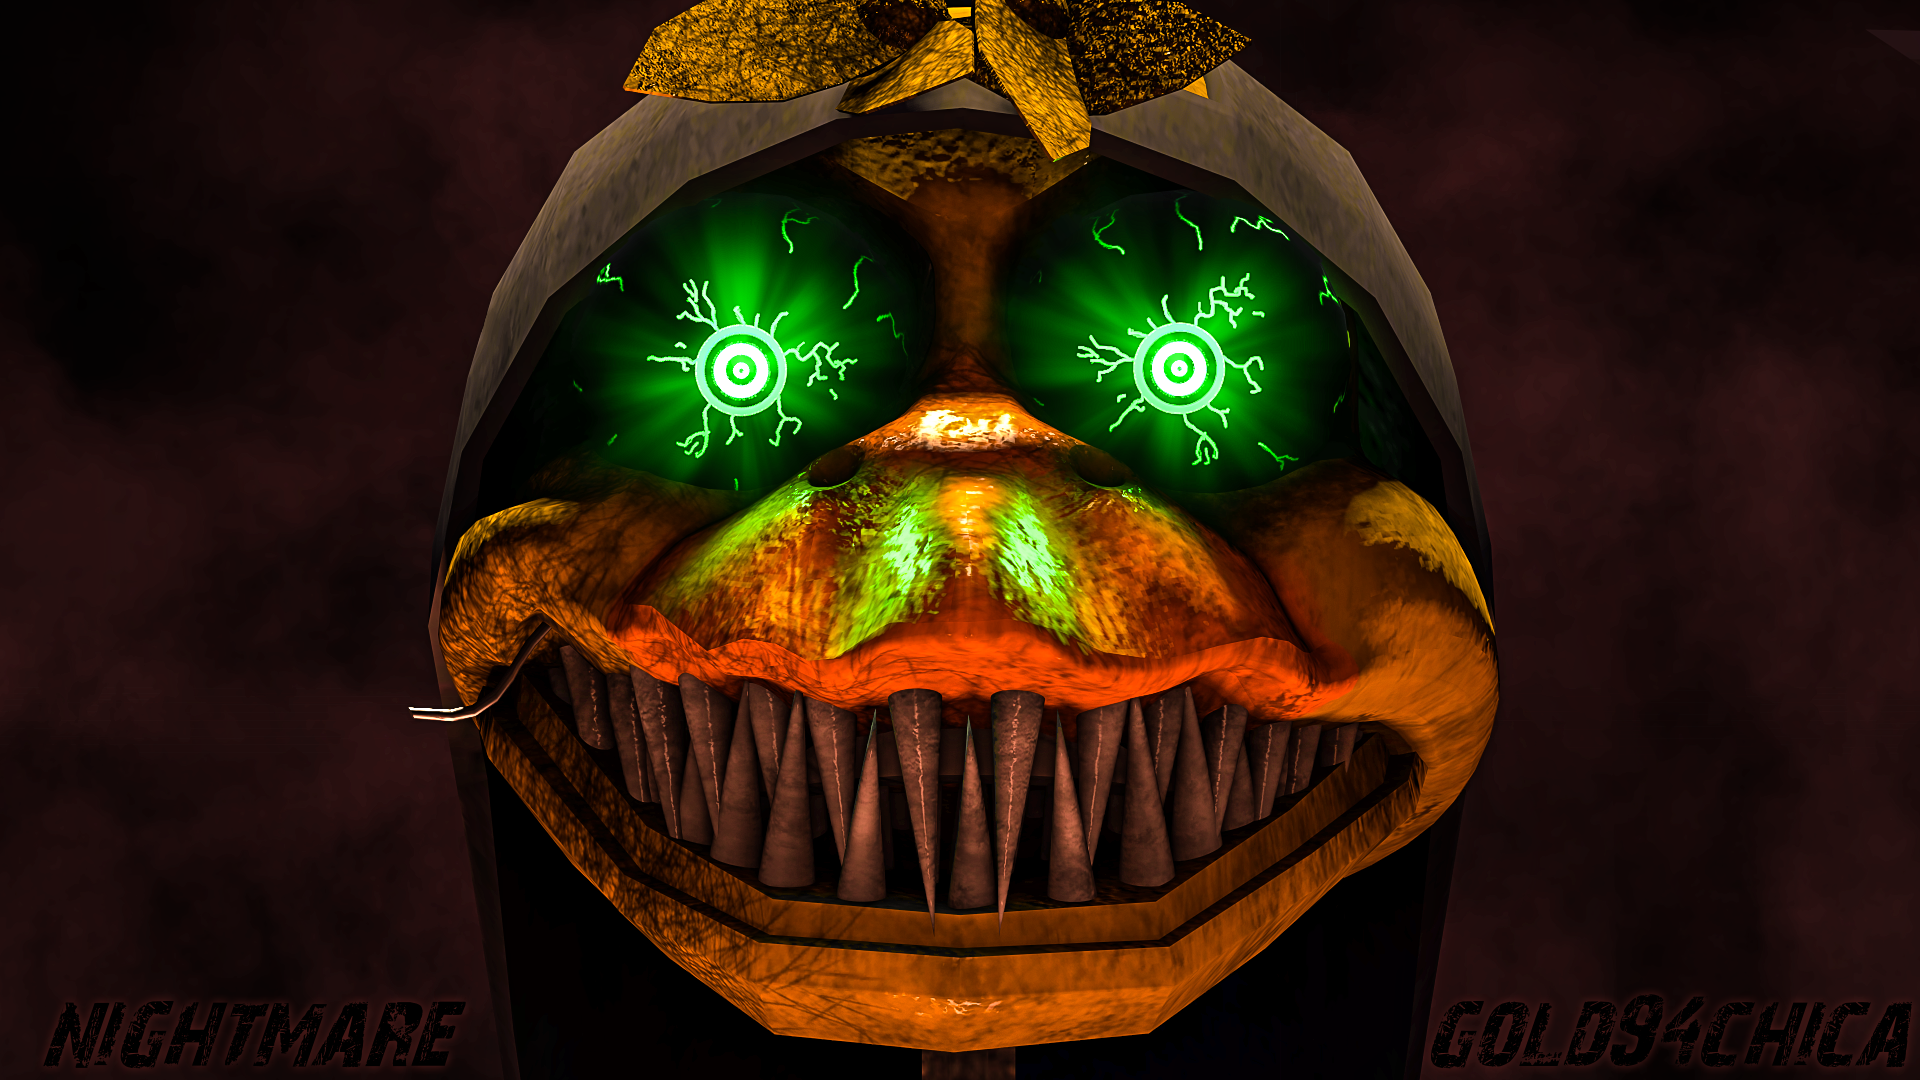 Nightmare gold94chica by gold94chica